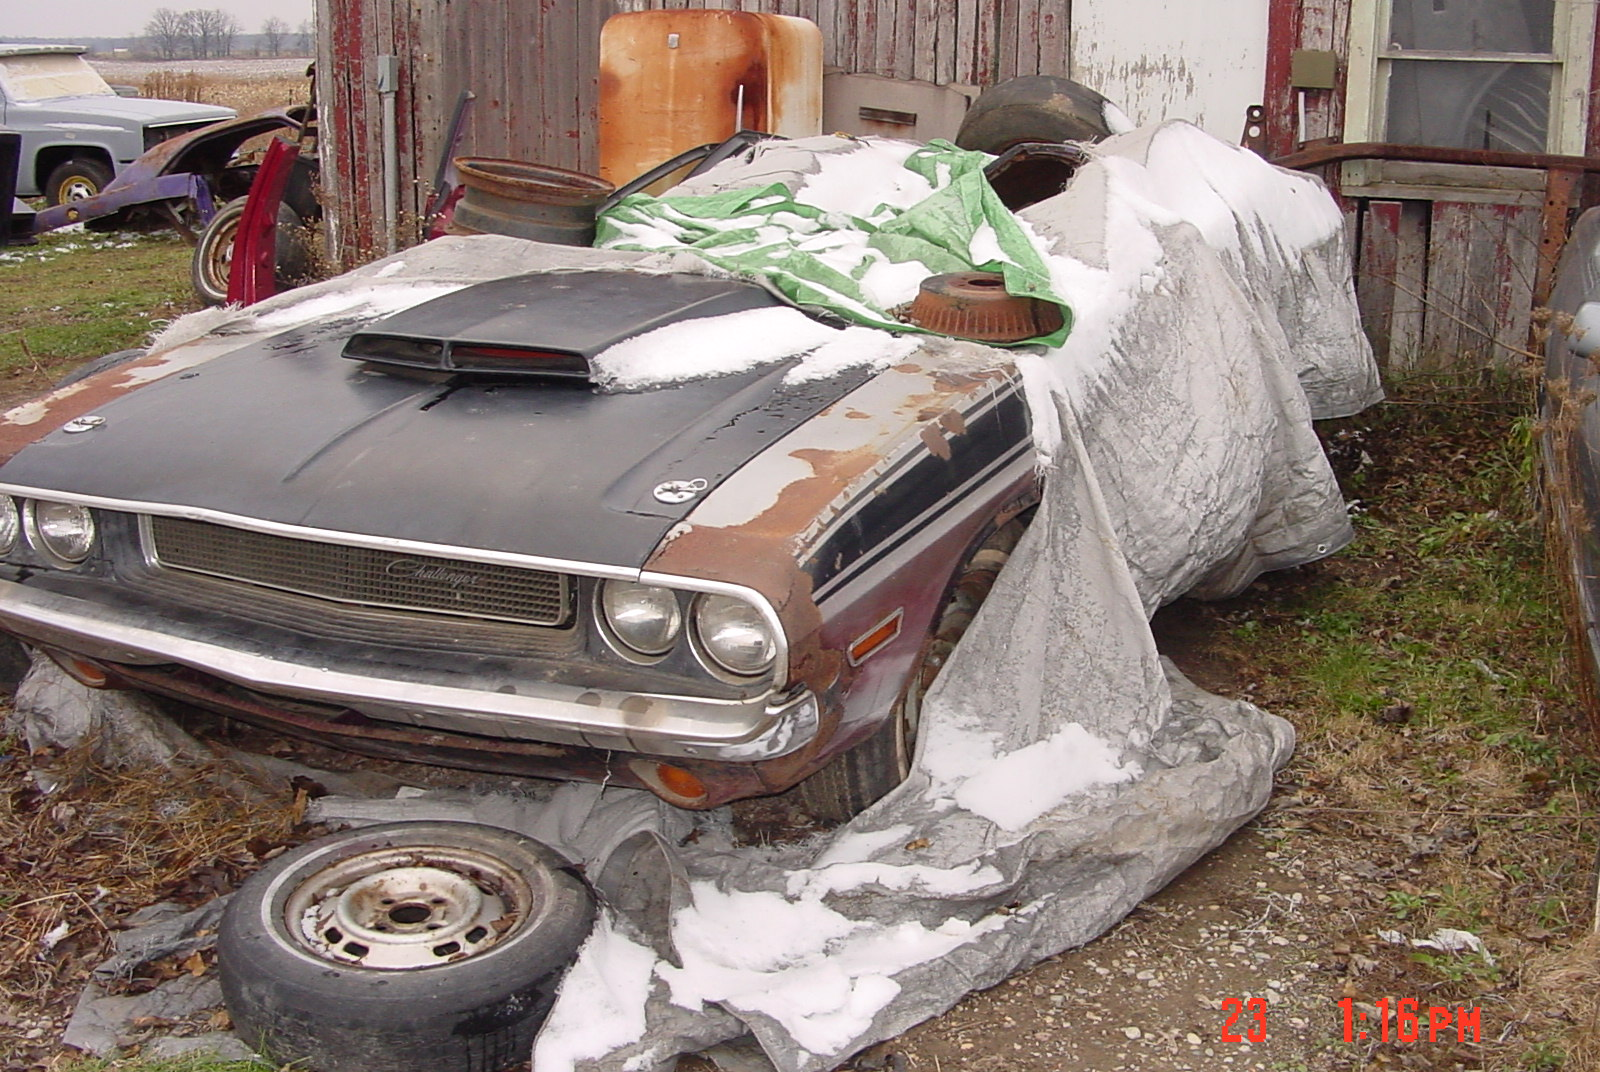 Cars in Barn. Charger%20at%20Body%20Shop%20024